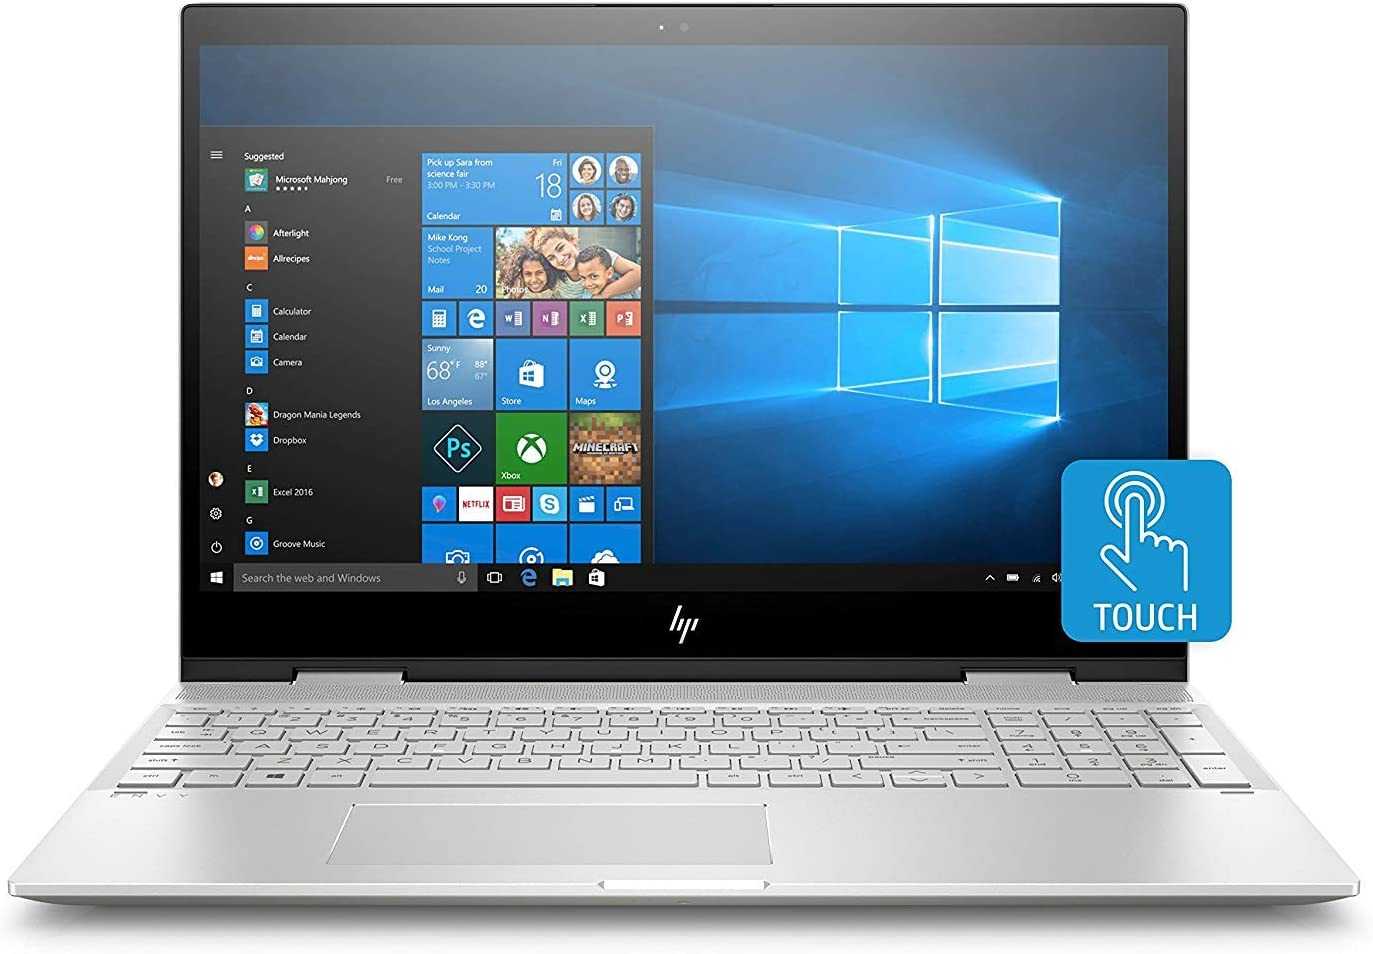 "HP Envy X360 15t 2-in-1 Touchscreen Laptop (Intel Core i7-8550U, 12GB DDR4 RAM, 256GB SSD, 15.6"" Full HD Touch Display, Windows 10) Convertible Notebook Computer"